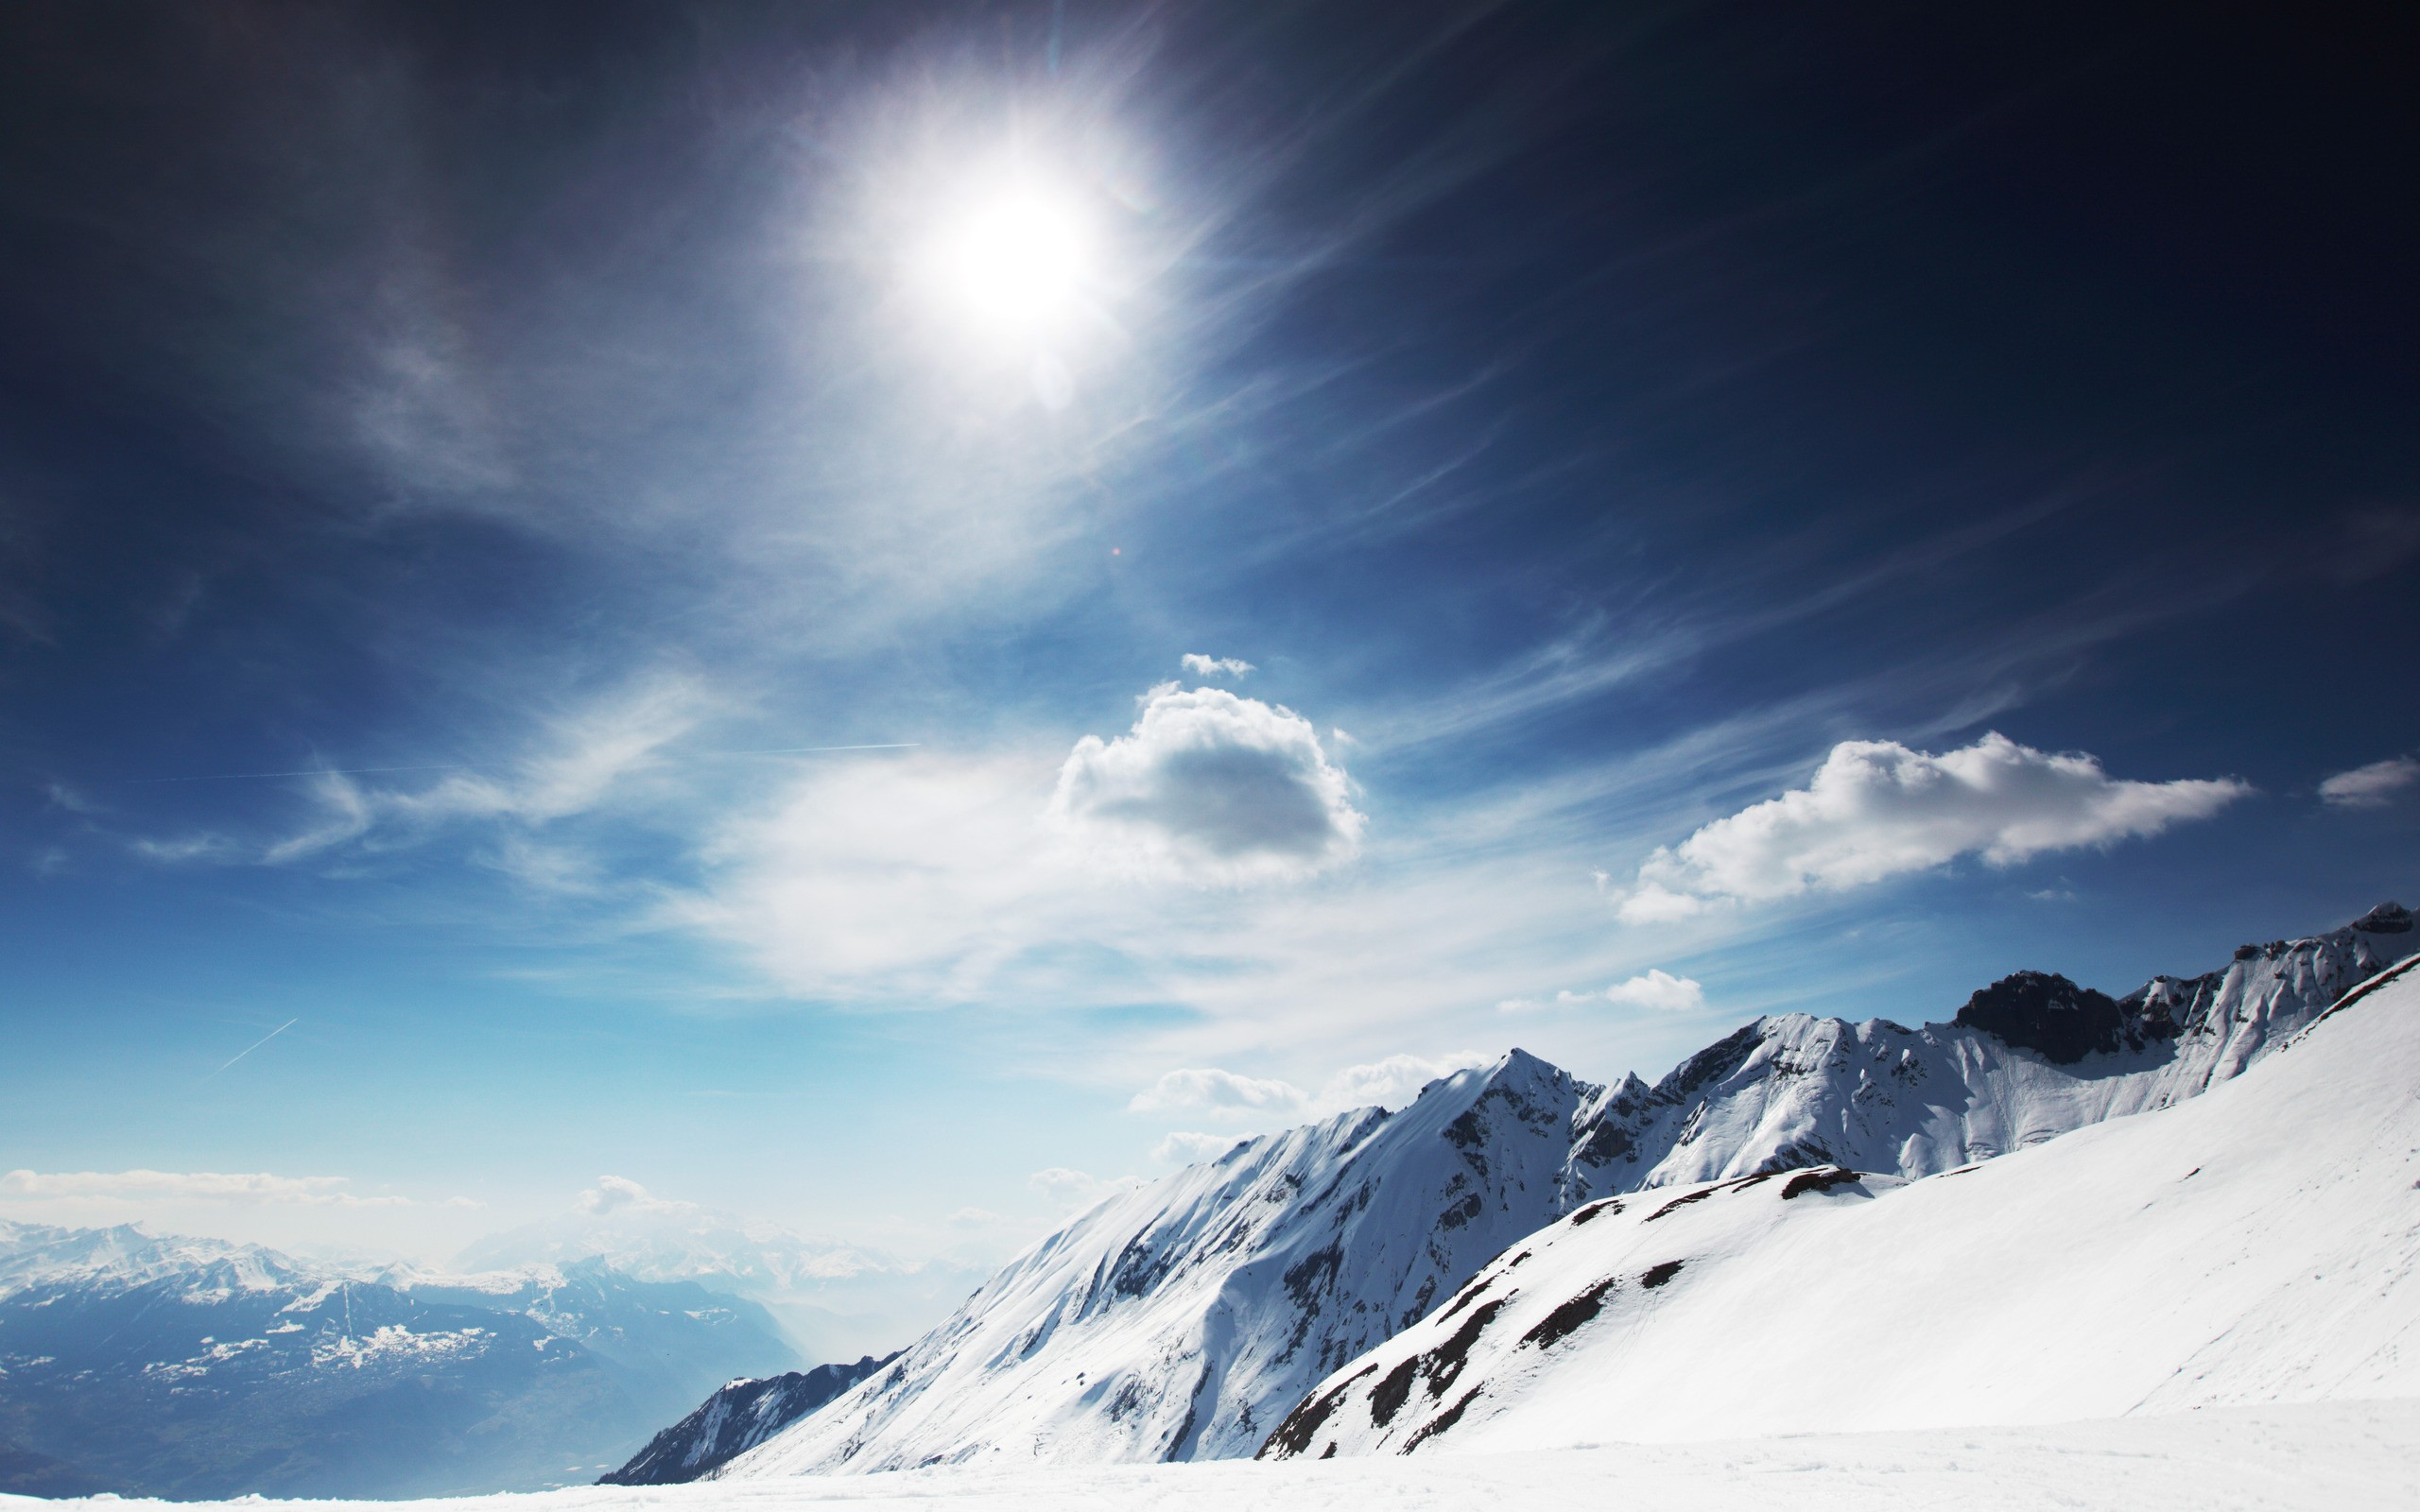 Sunny Snowy Mountains Sunny Snowy Mountains Wallpapers | HD Wallpapers